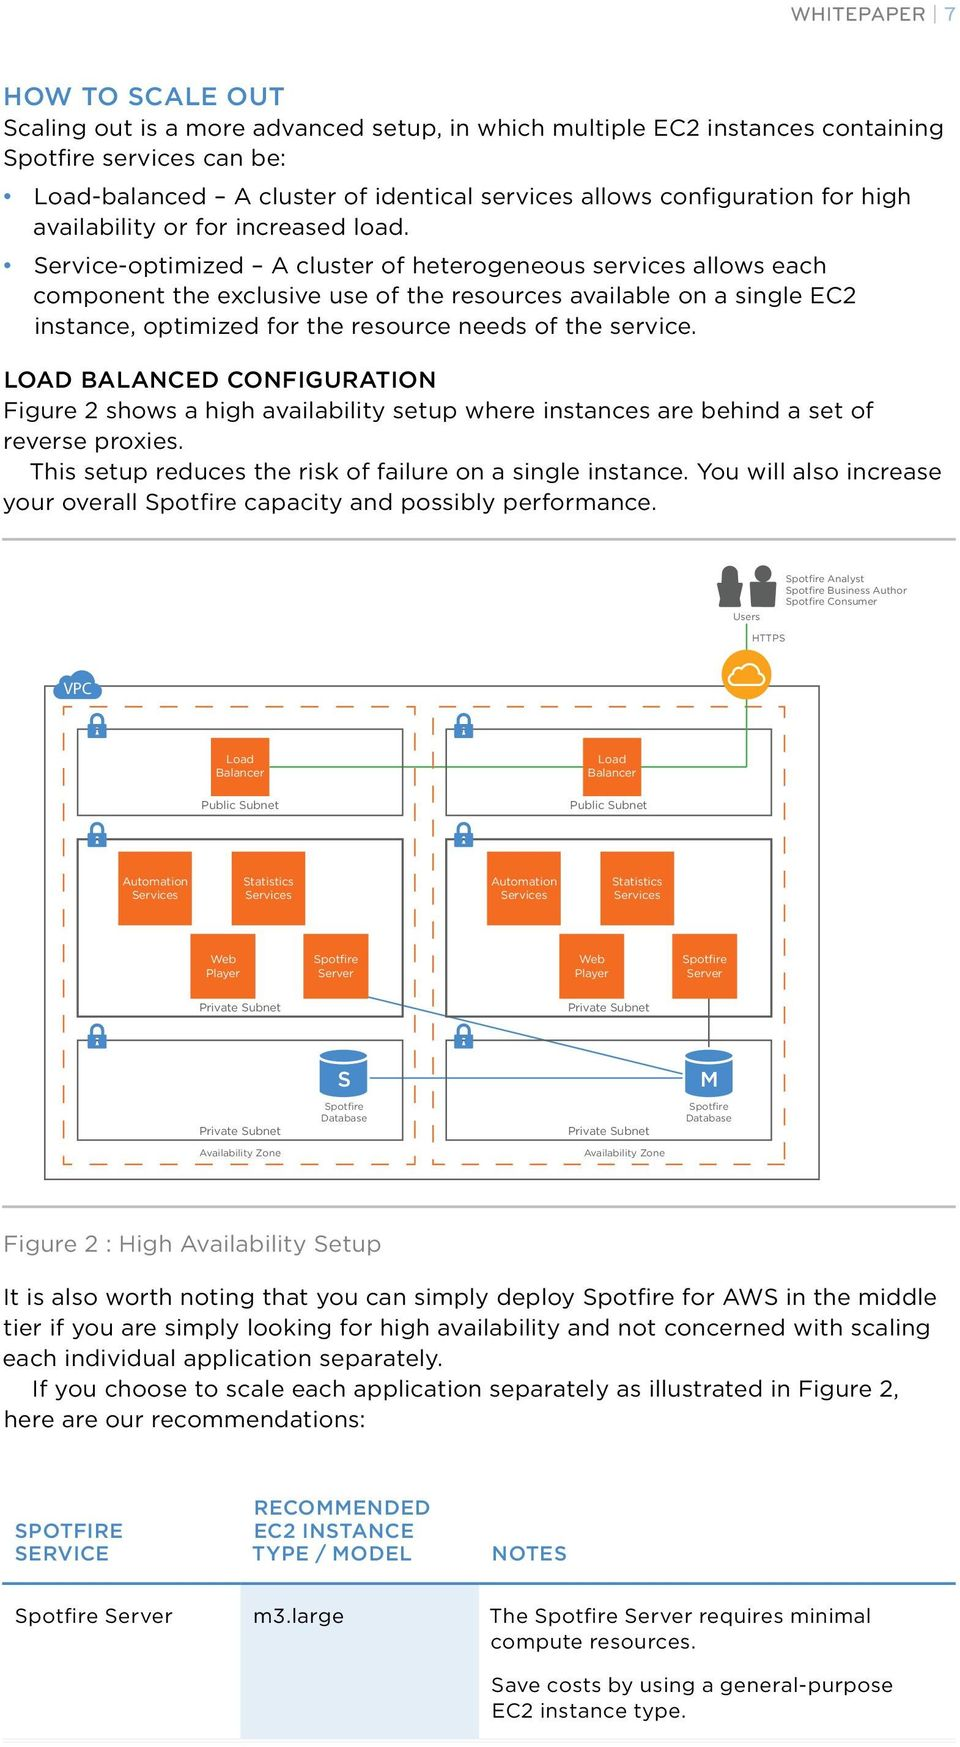 Service-optimized A cluster of heterogeneous services allows each component the exclusive use of the resources available on a single EC2 instance, optimized for the resource needs of the service.